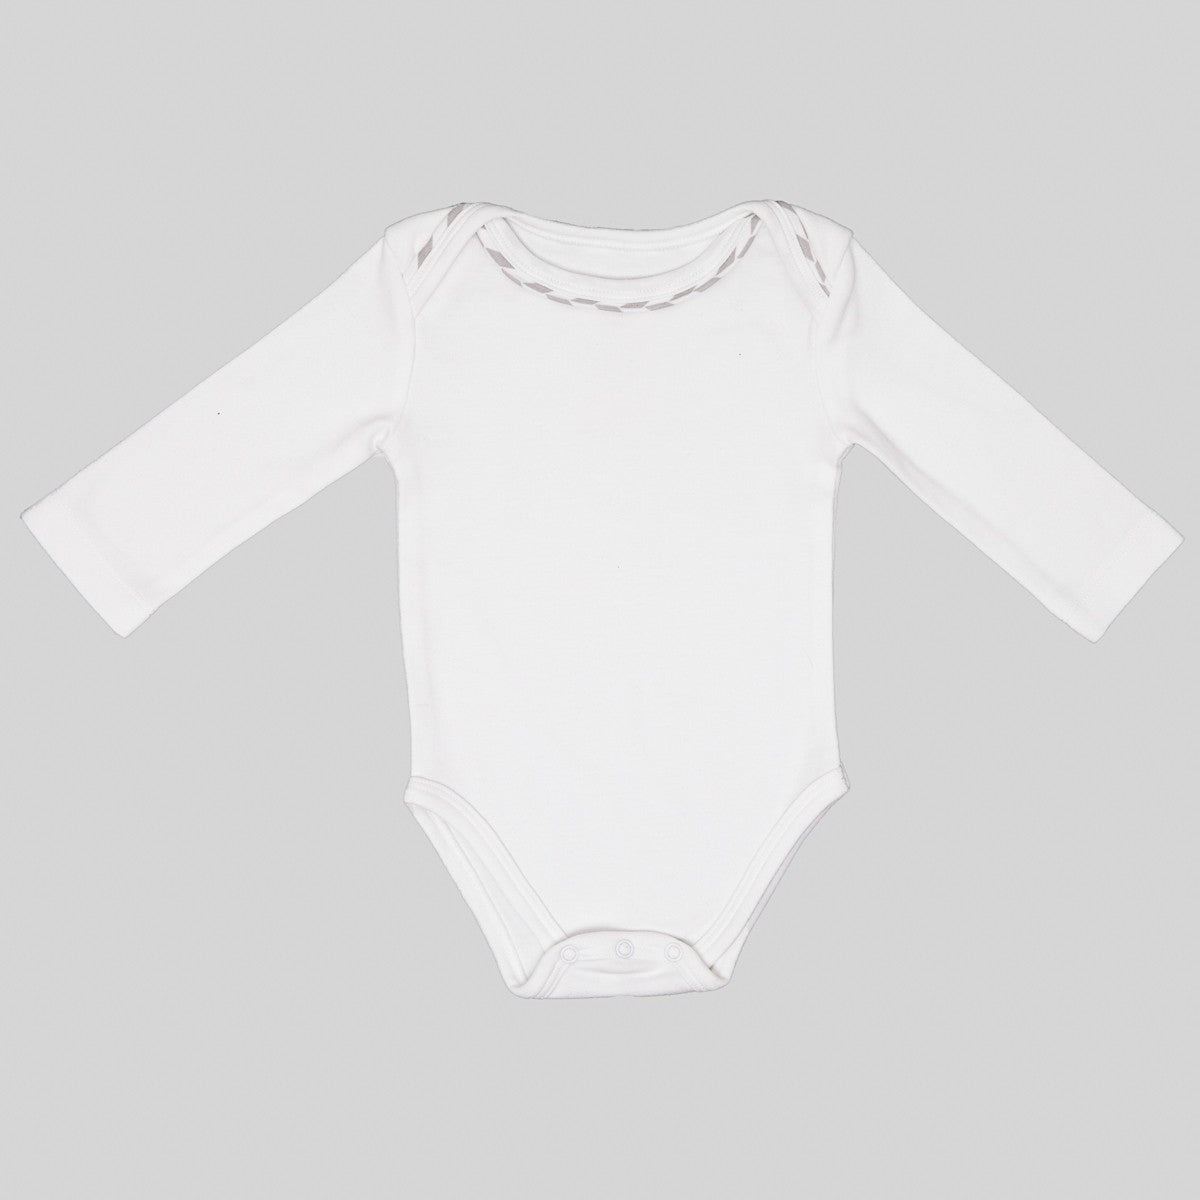 ORGANIC BODYSUIT - WHITE/GREY